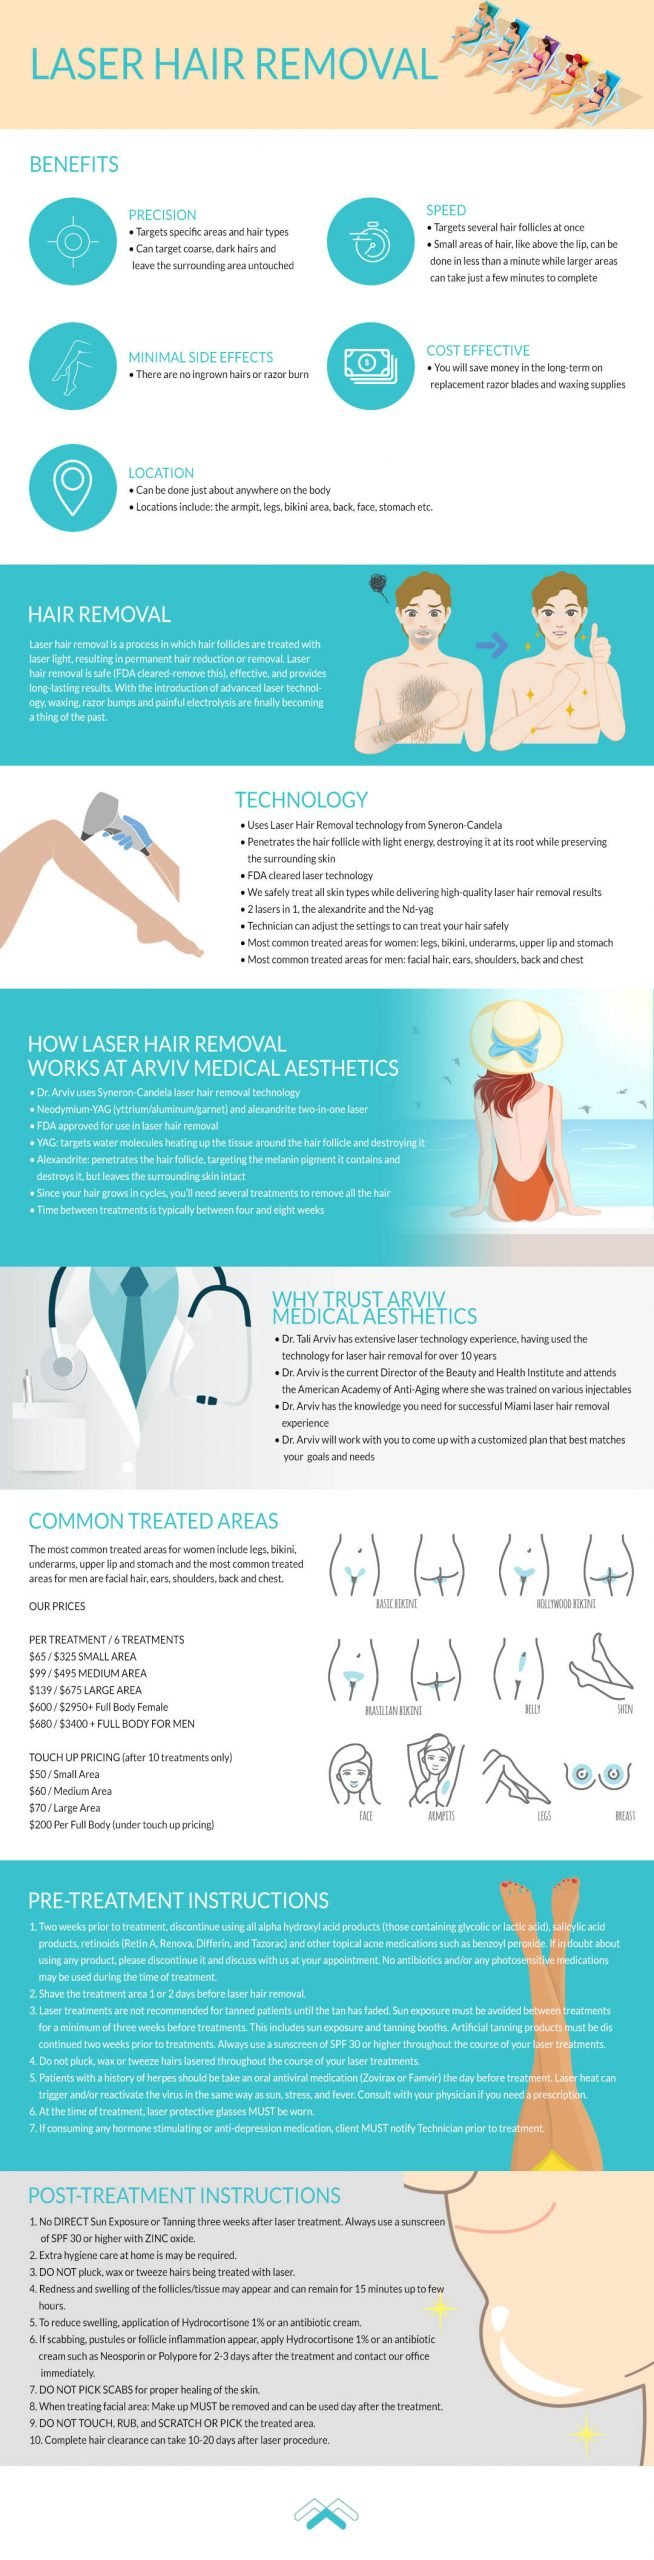 Miami Laser Hair Removal Cost Info Arviv Medical Aesthetics